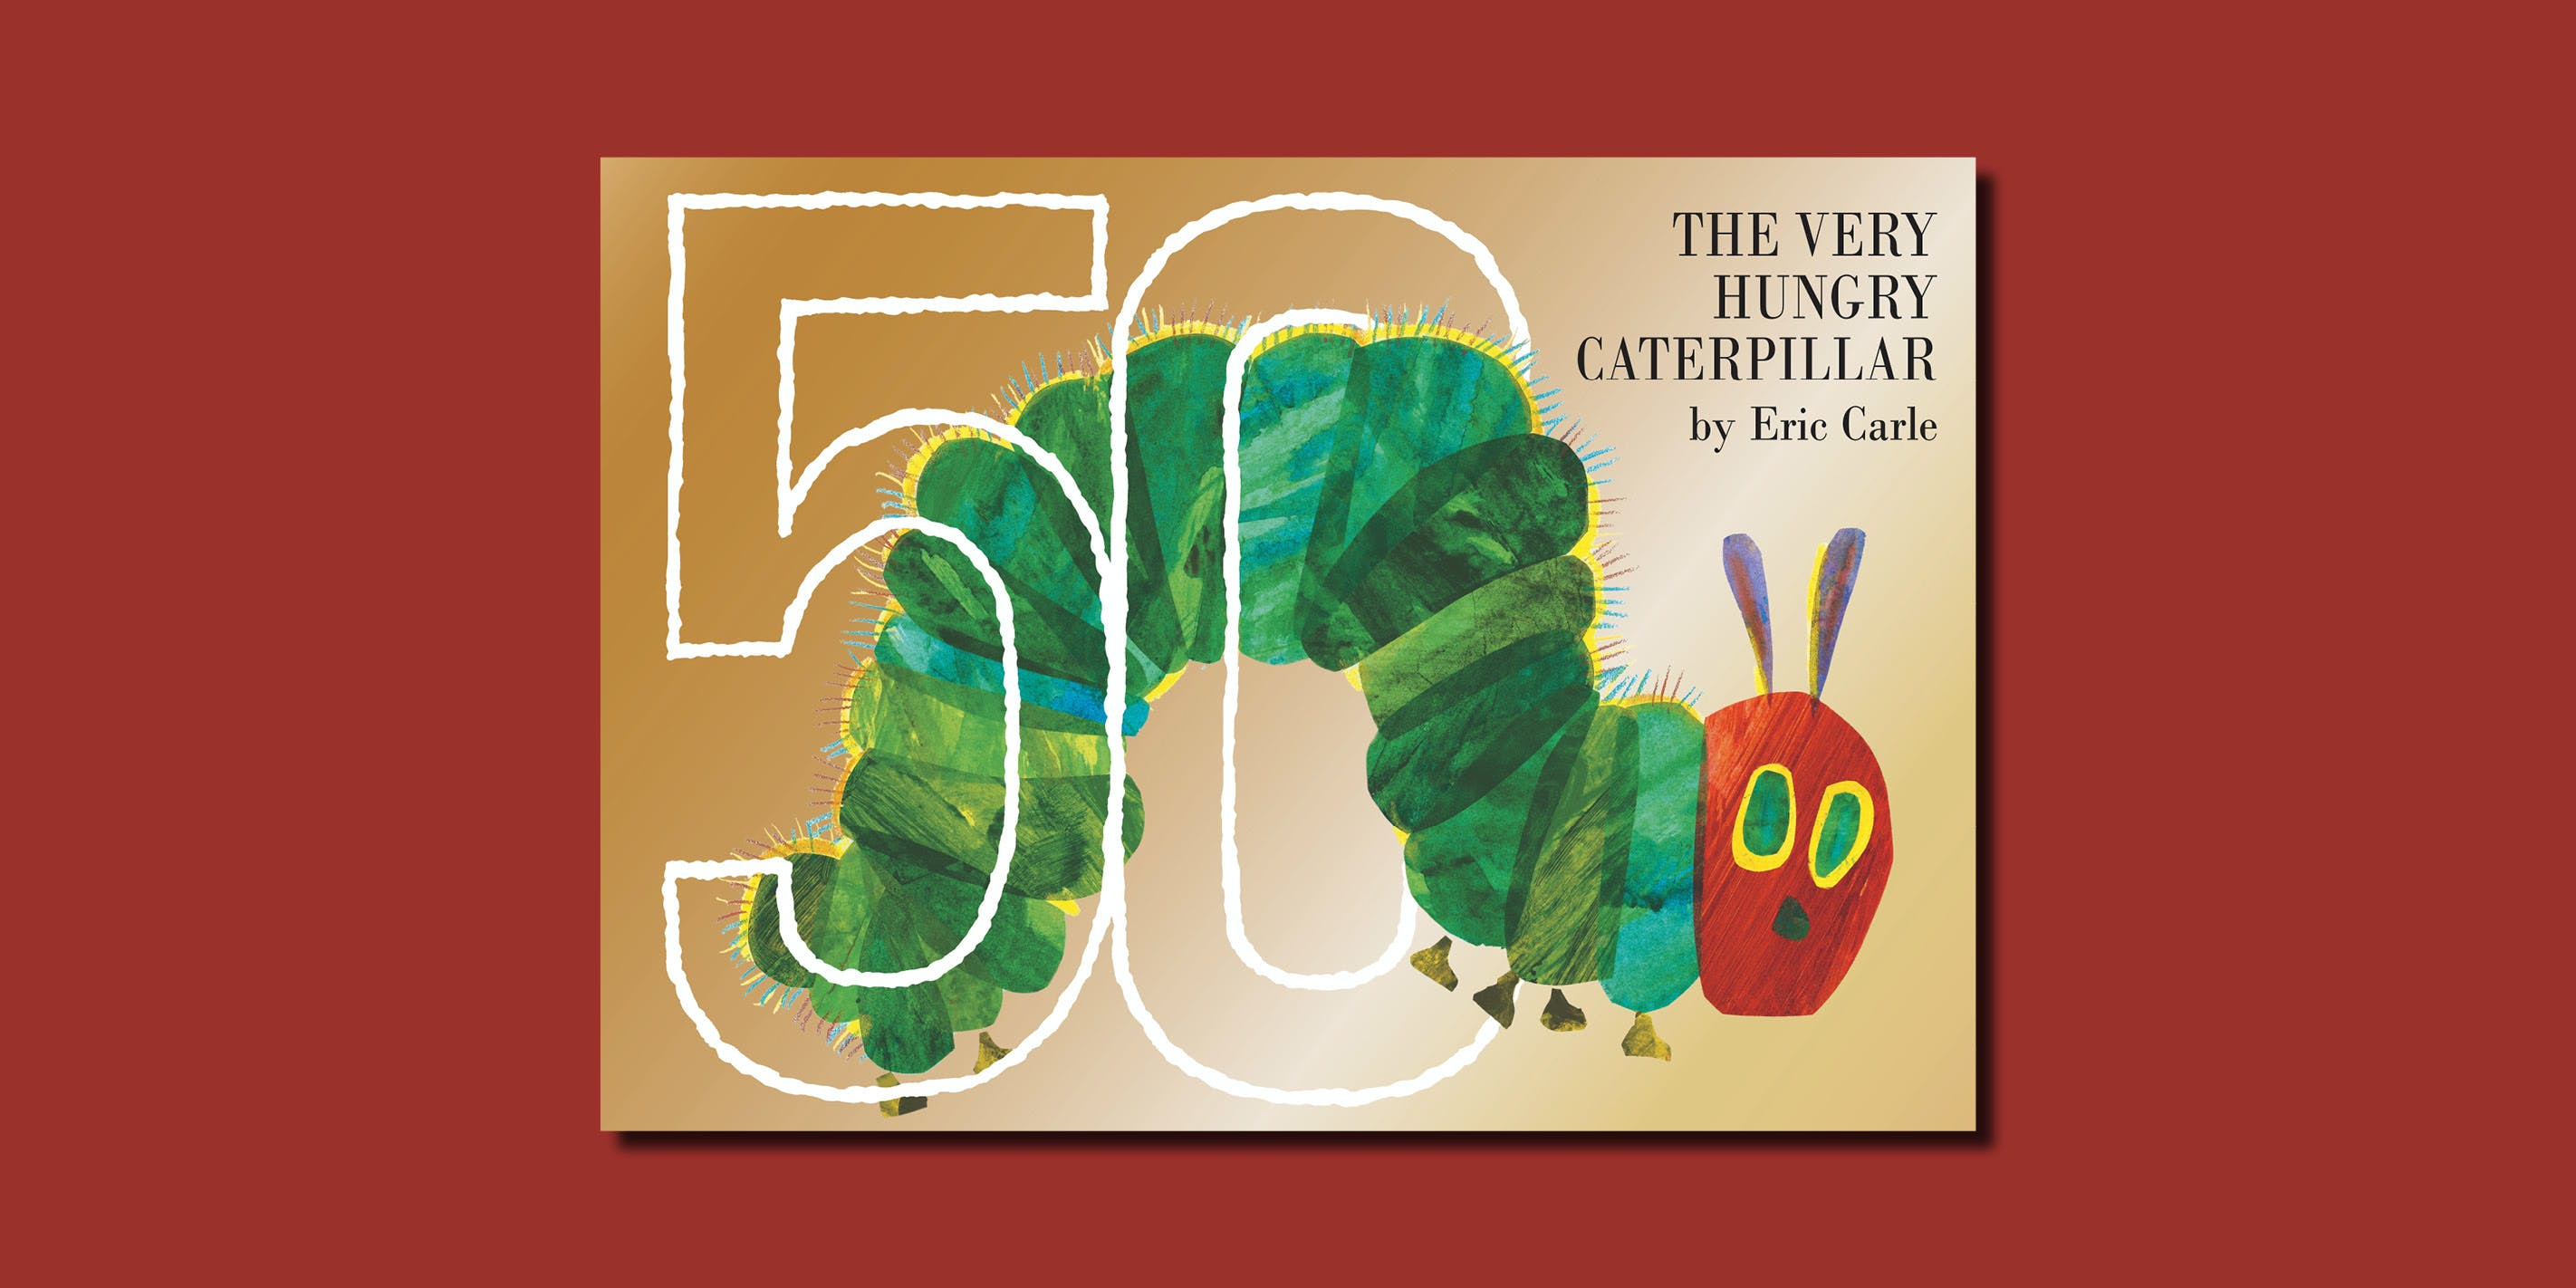 Explore the great outdoors with the Very Hungry Caterpillar!